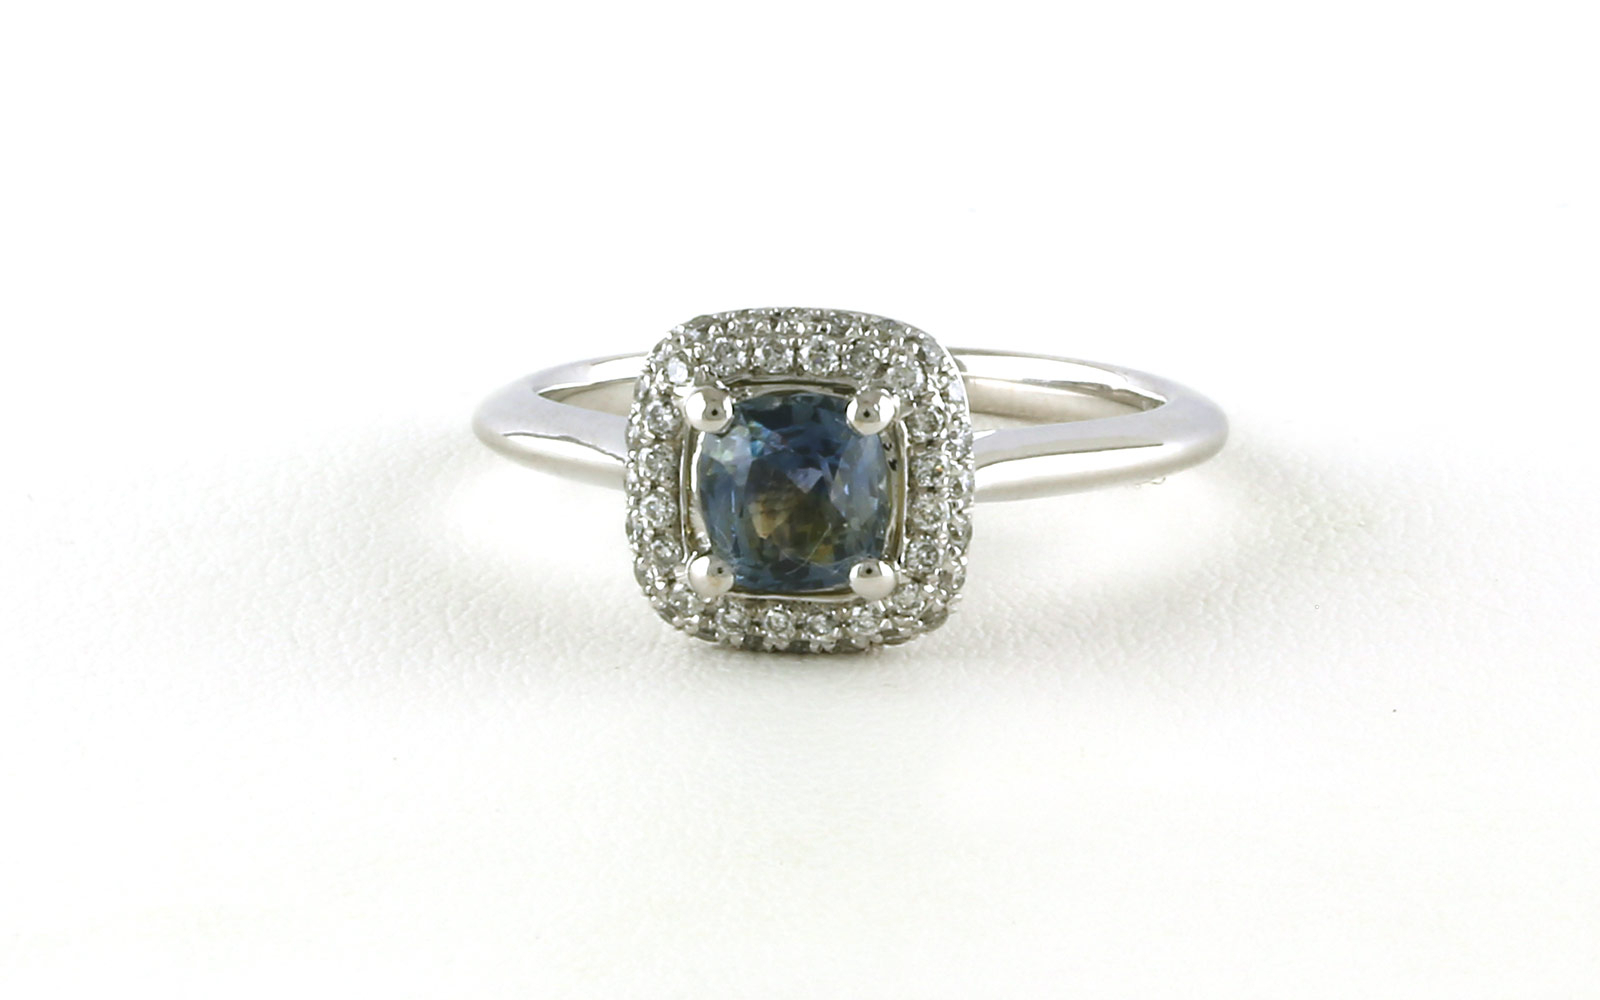 Halo Style Cushion Cut Montana Sapphire Ring In White Gold Within Cushion Cut Sapphire Rings (View 19 of 25)